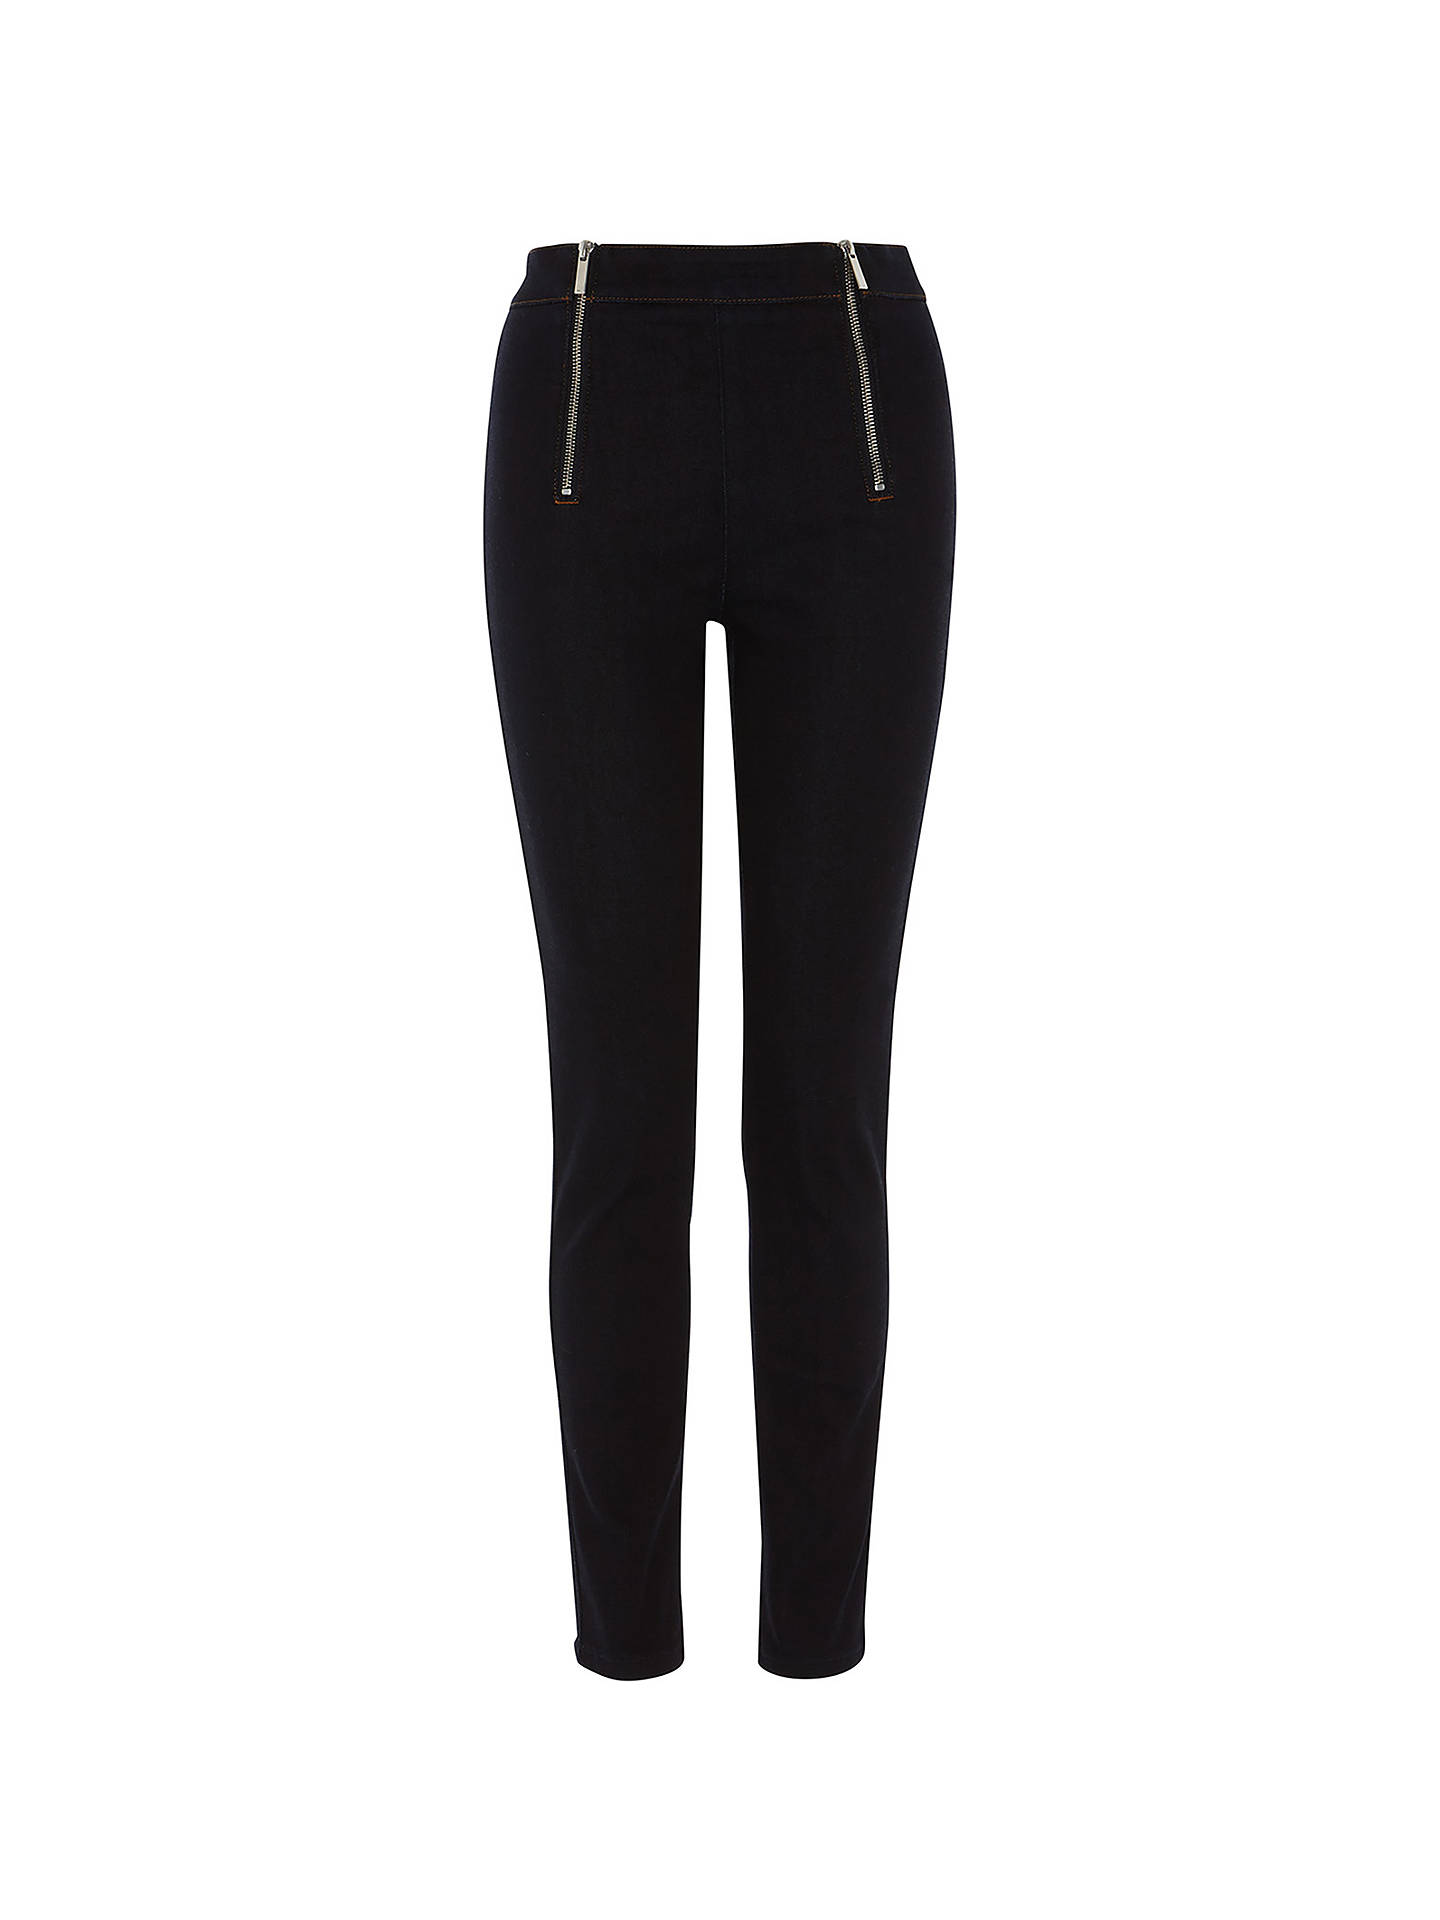 BuyKaren Millen Zip Denim Leggings, Dark Denim, 8 Online at johnlewis.com